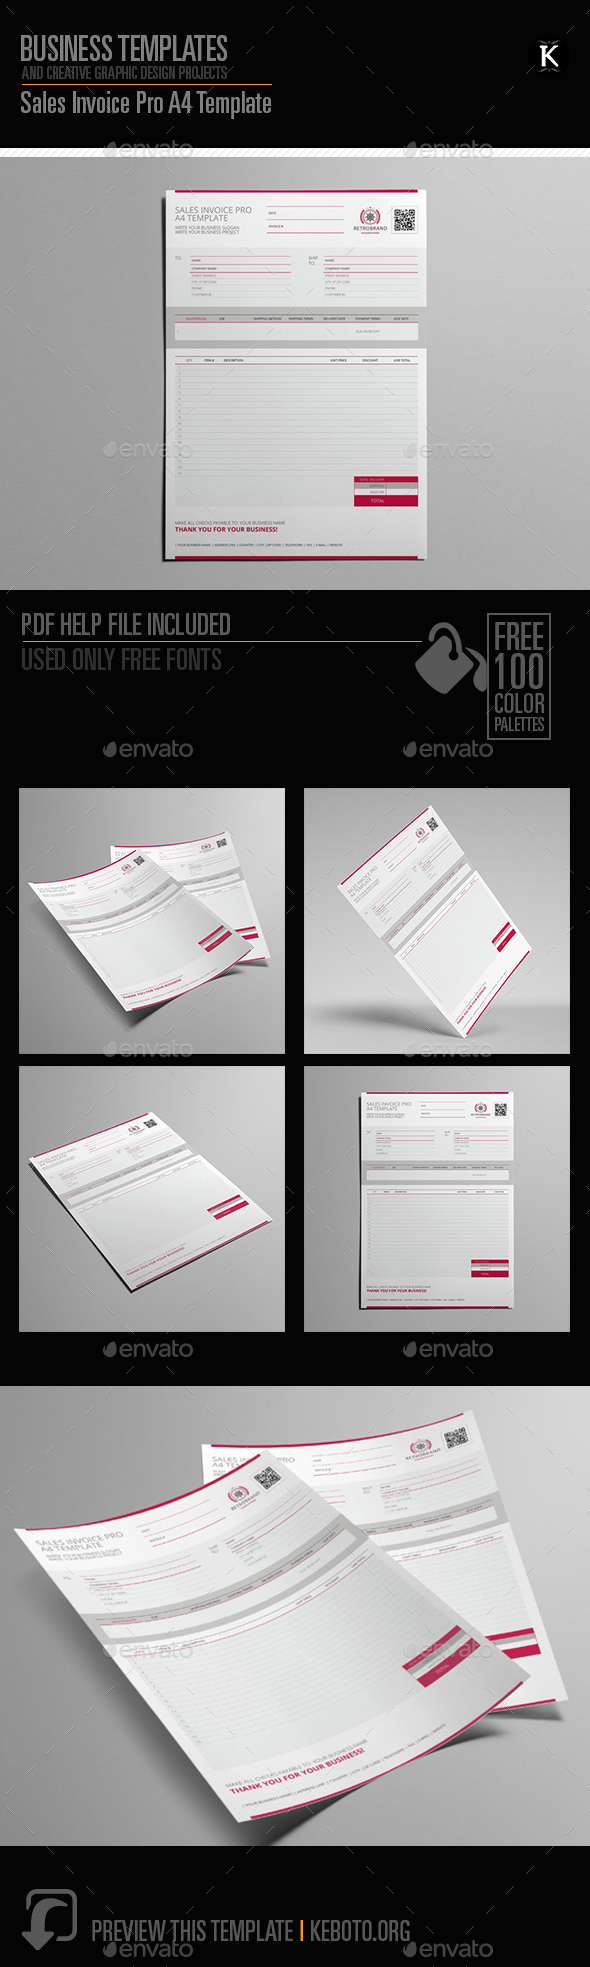 Sales Invoice Pro A4 Template - Miscellaneous Print Templates